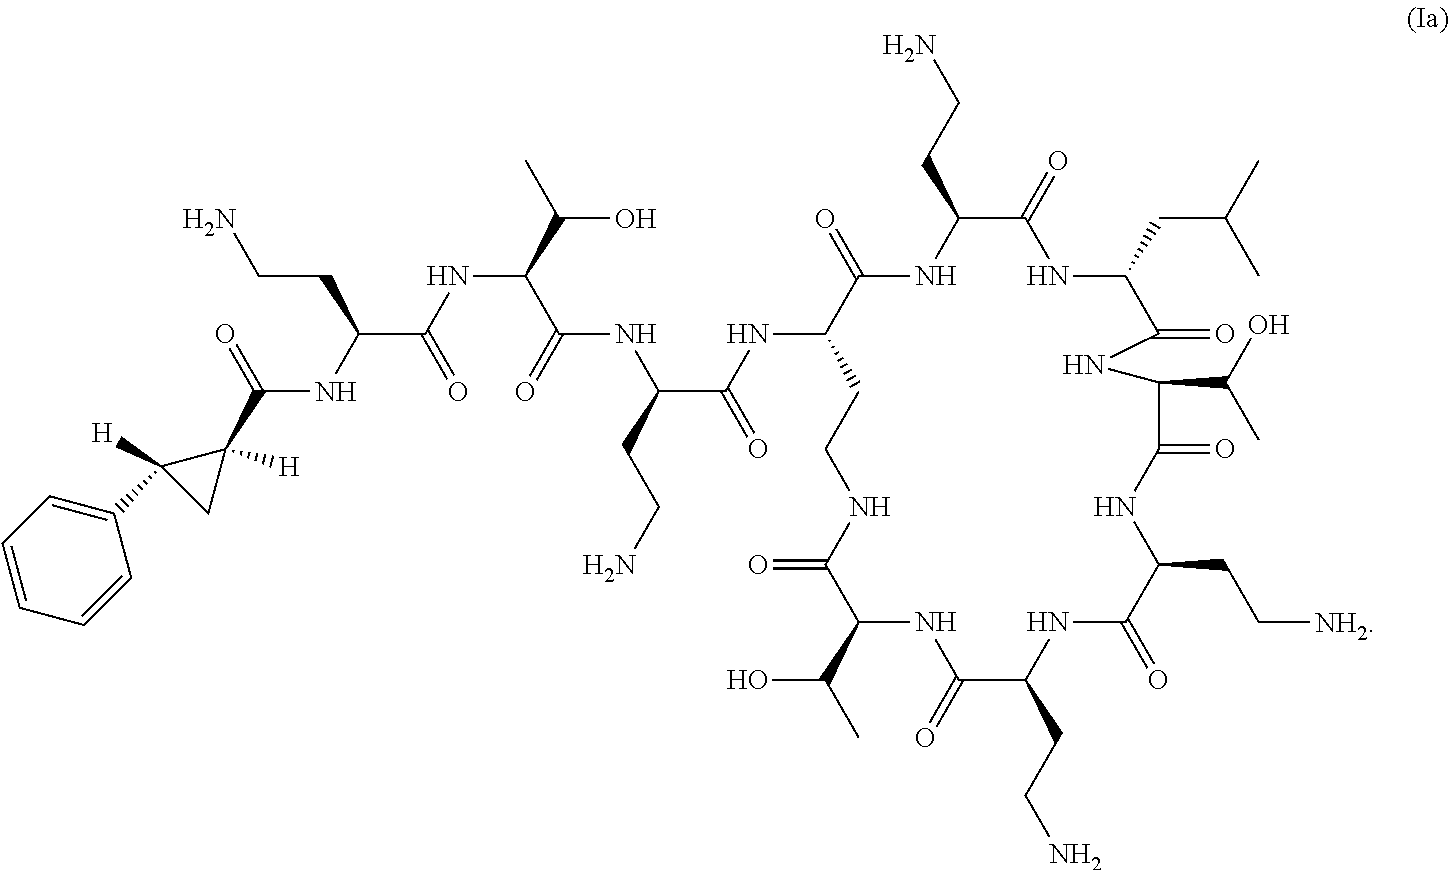 US8415307B1 - Antibiotic compositions for the treatment of